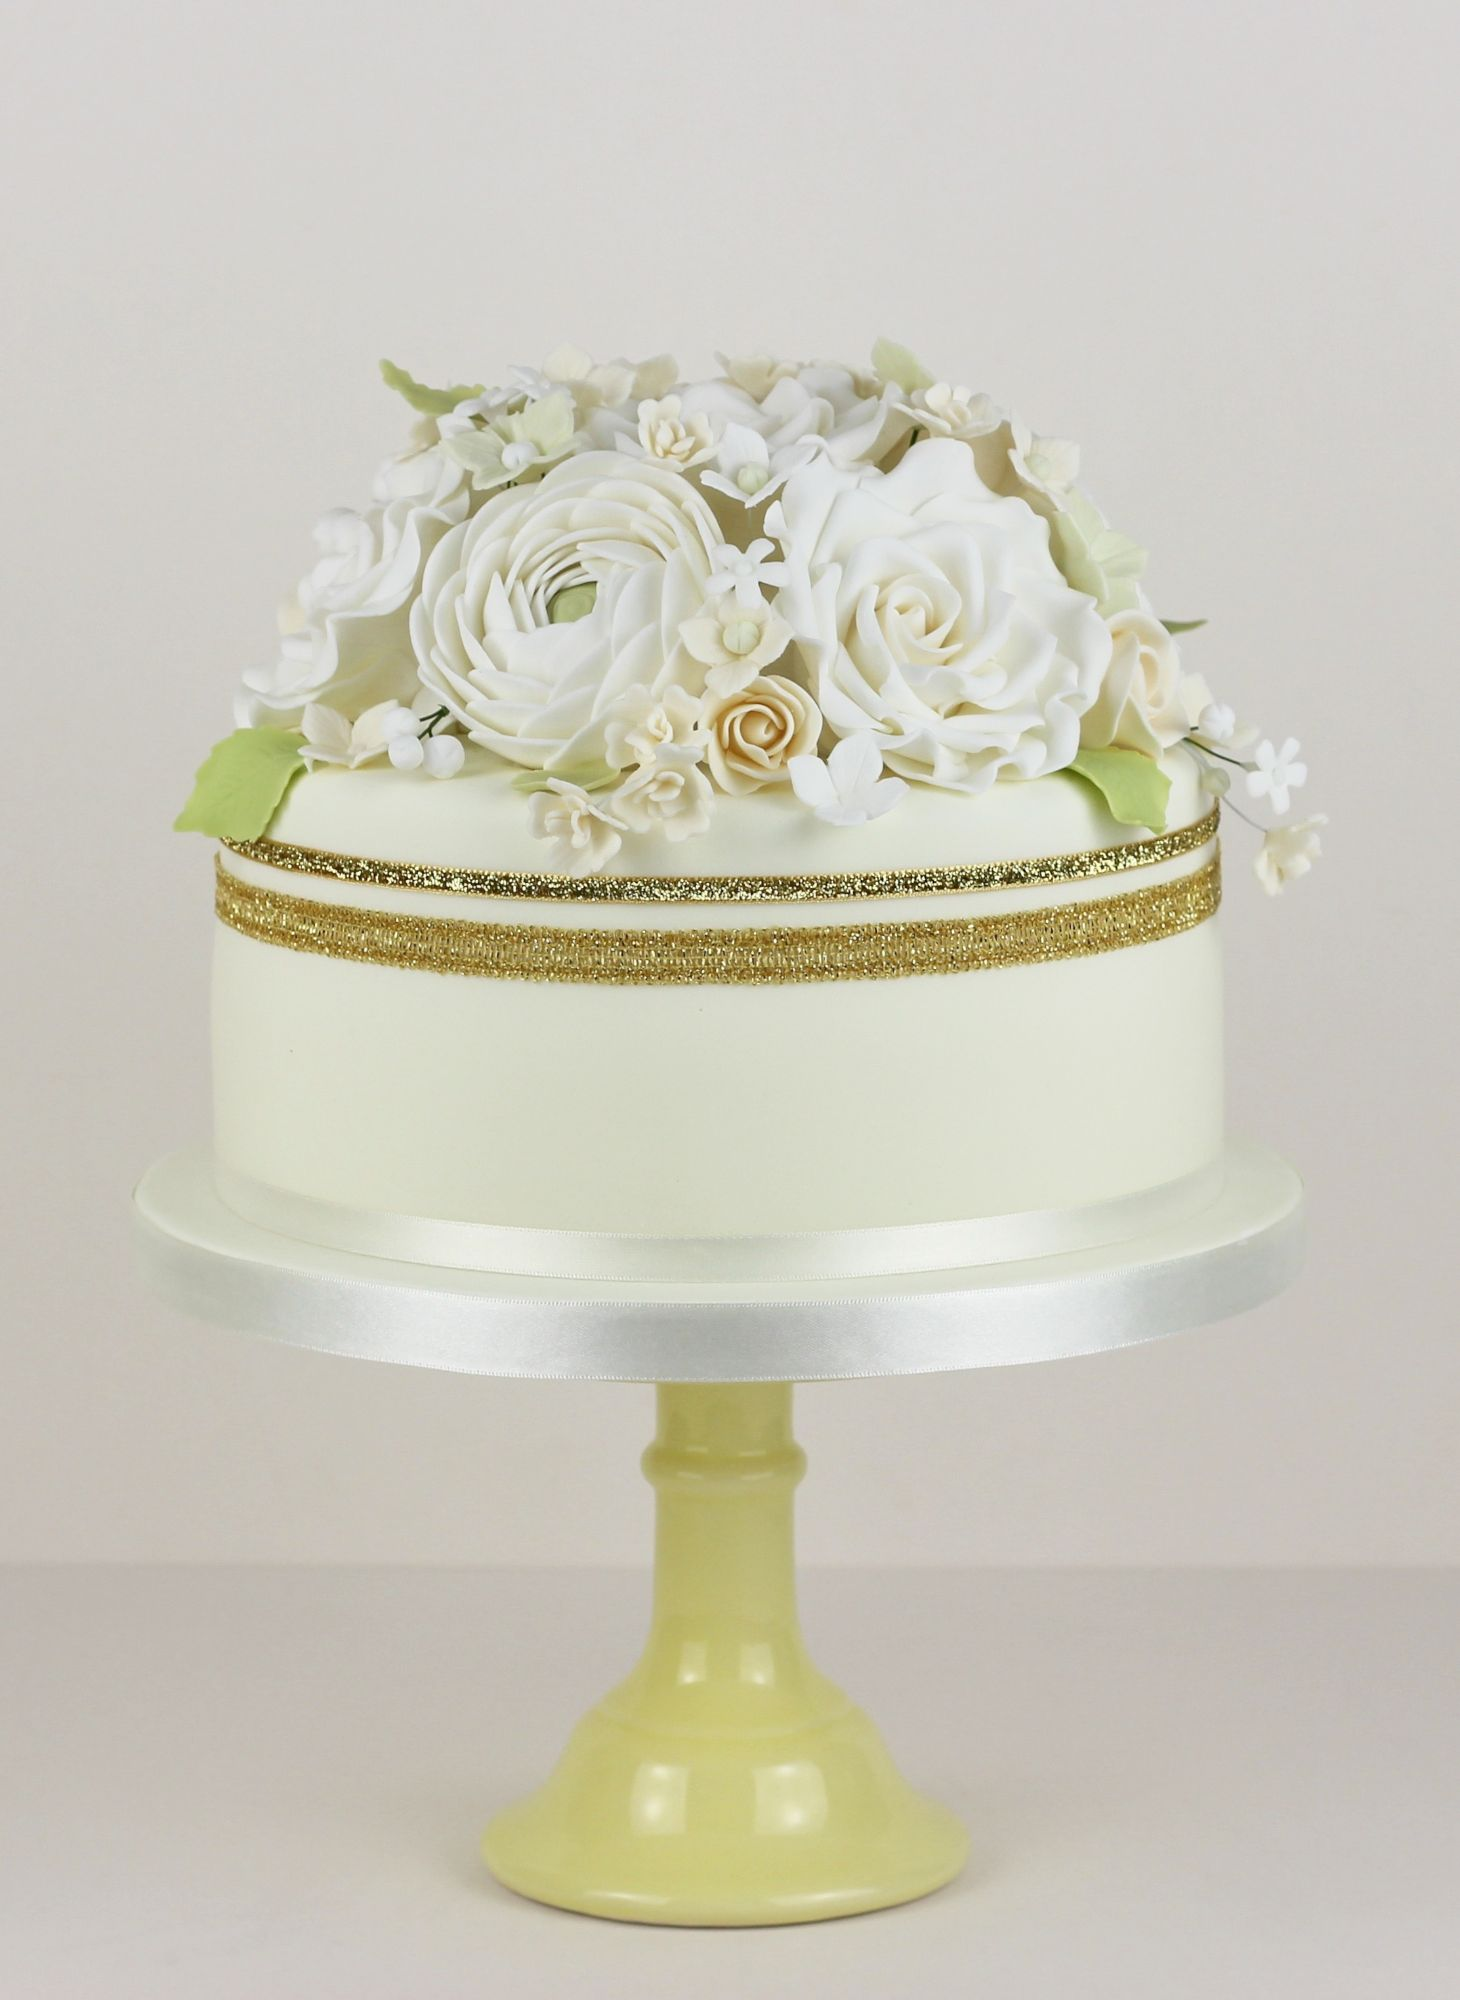 Full flower cake topper with a mixture of sugar flowers